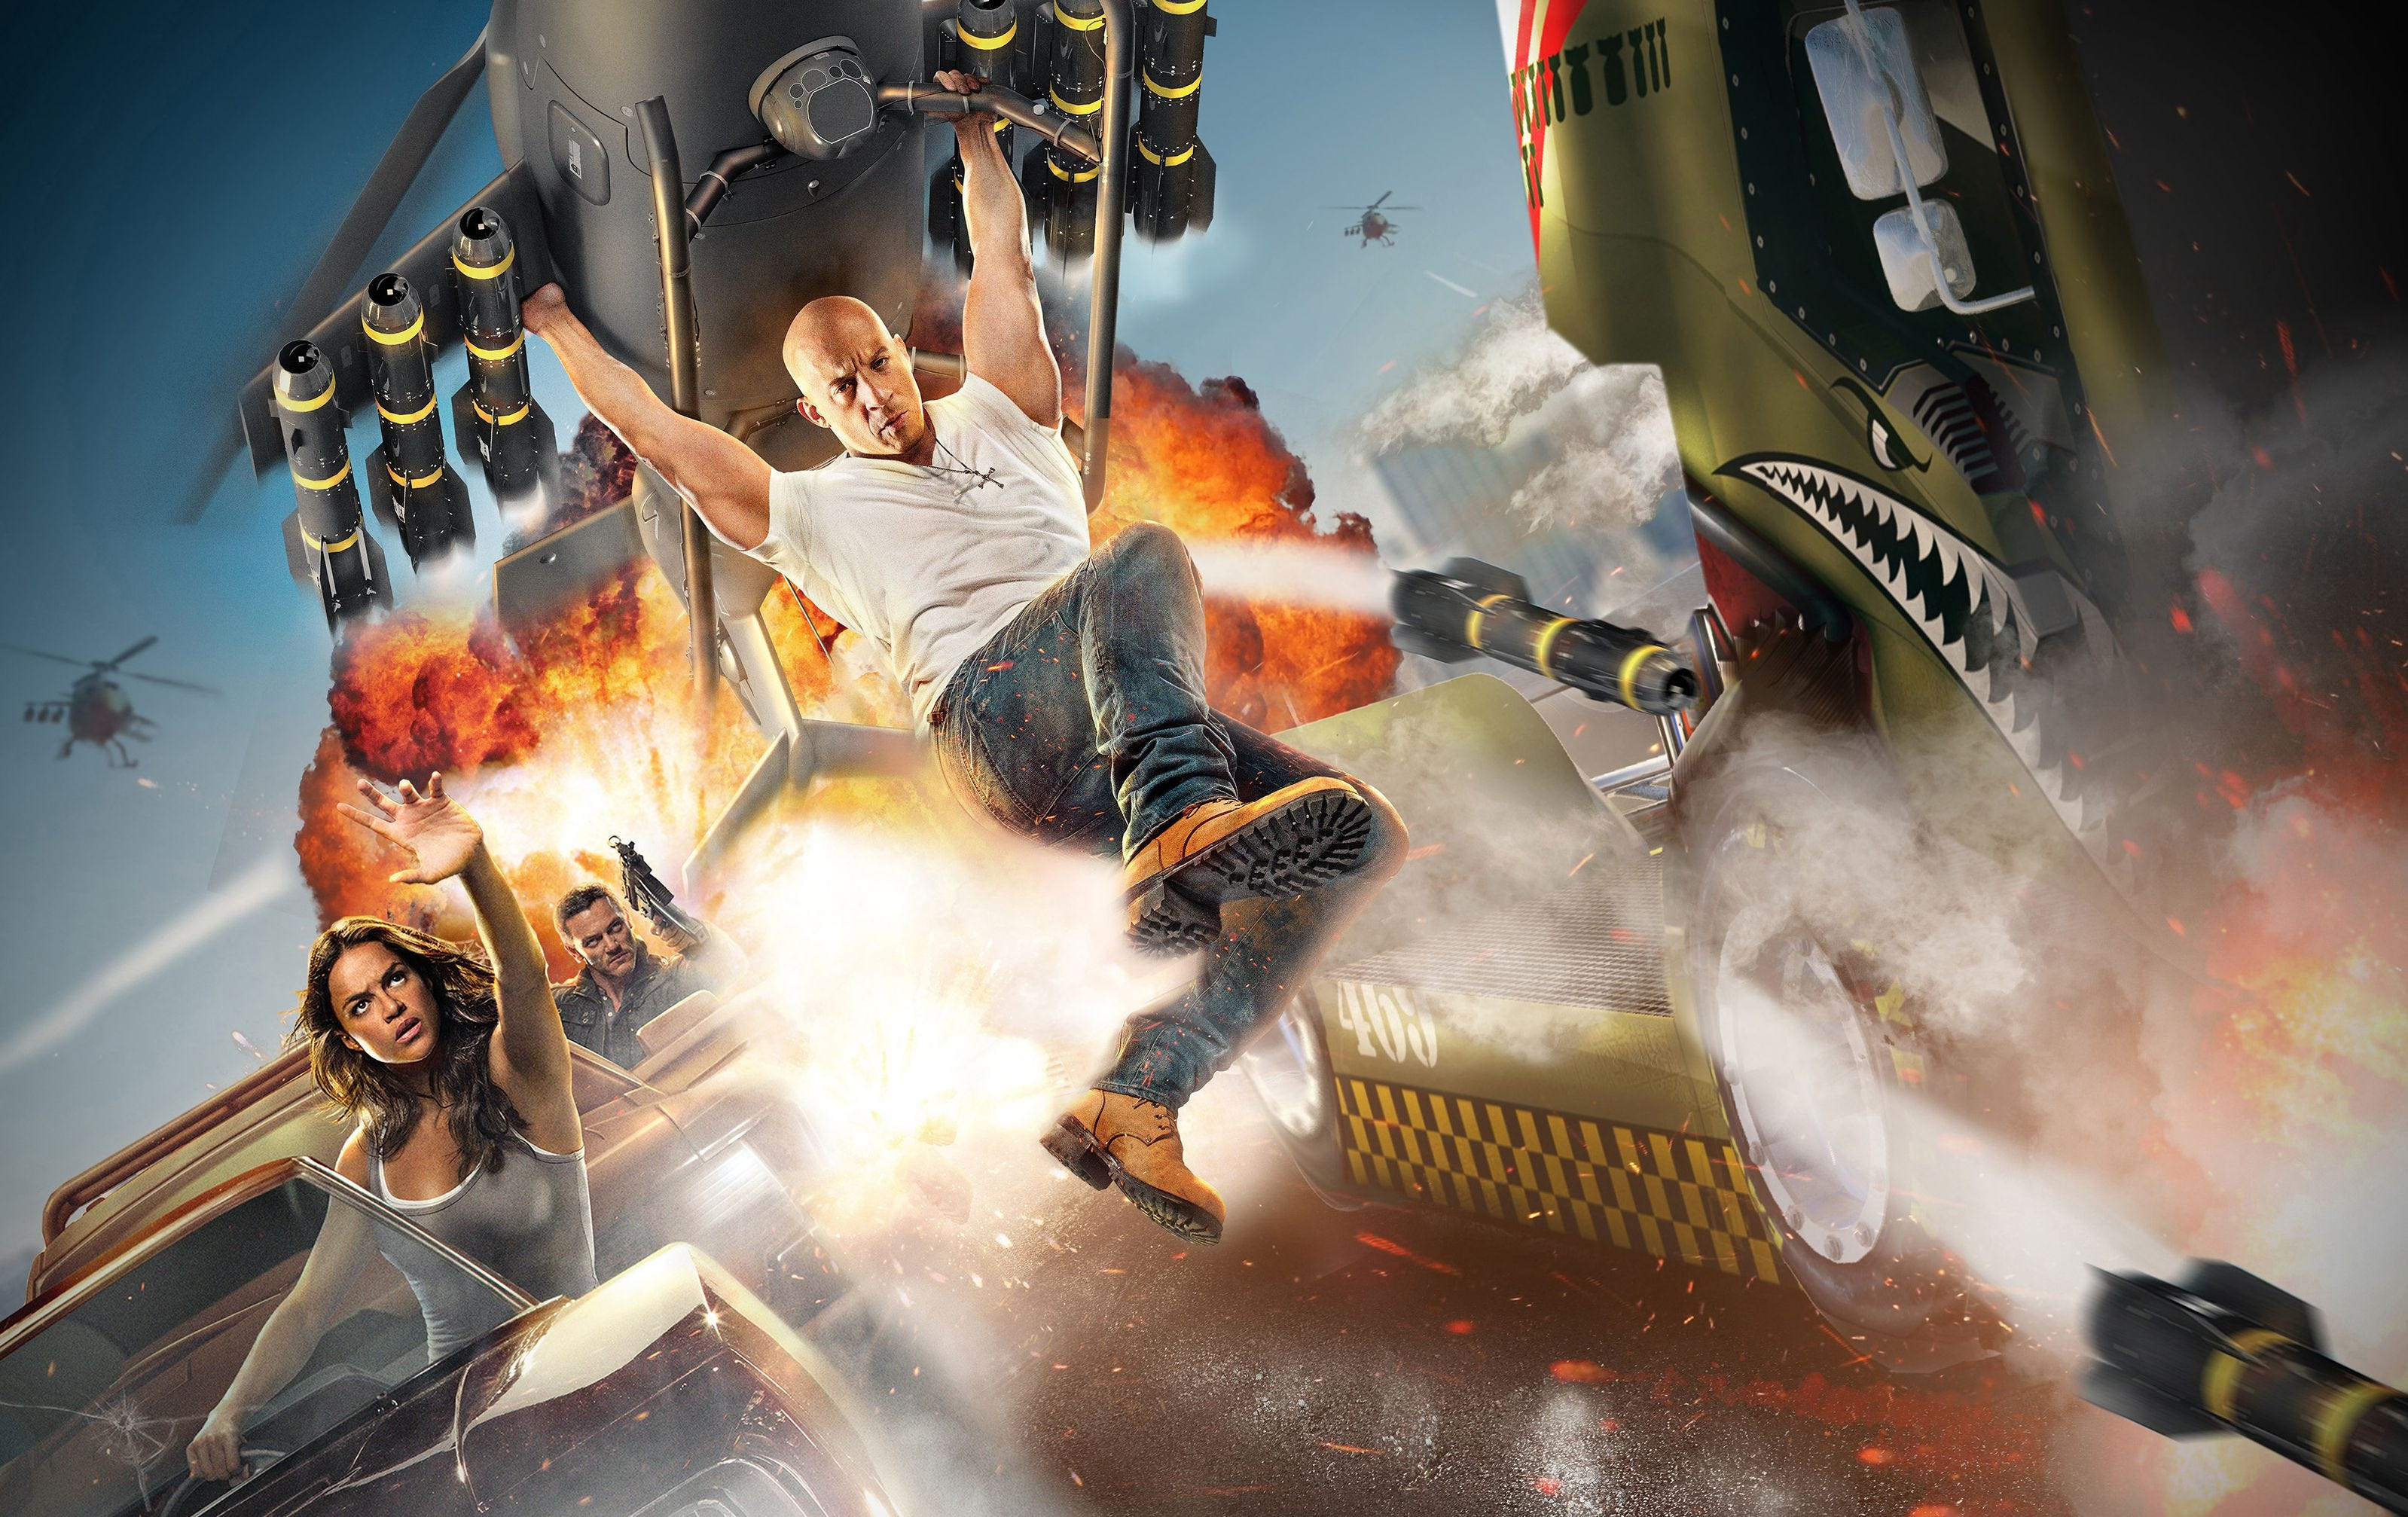 Universal Orlando's Fast & Furious – Supercharged: Does it live up to the movies? | USA Today